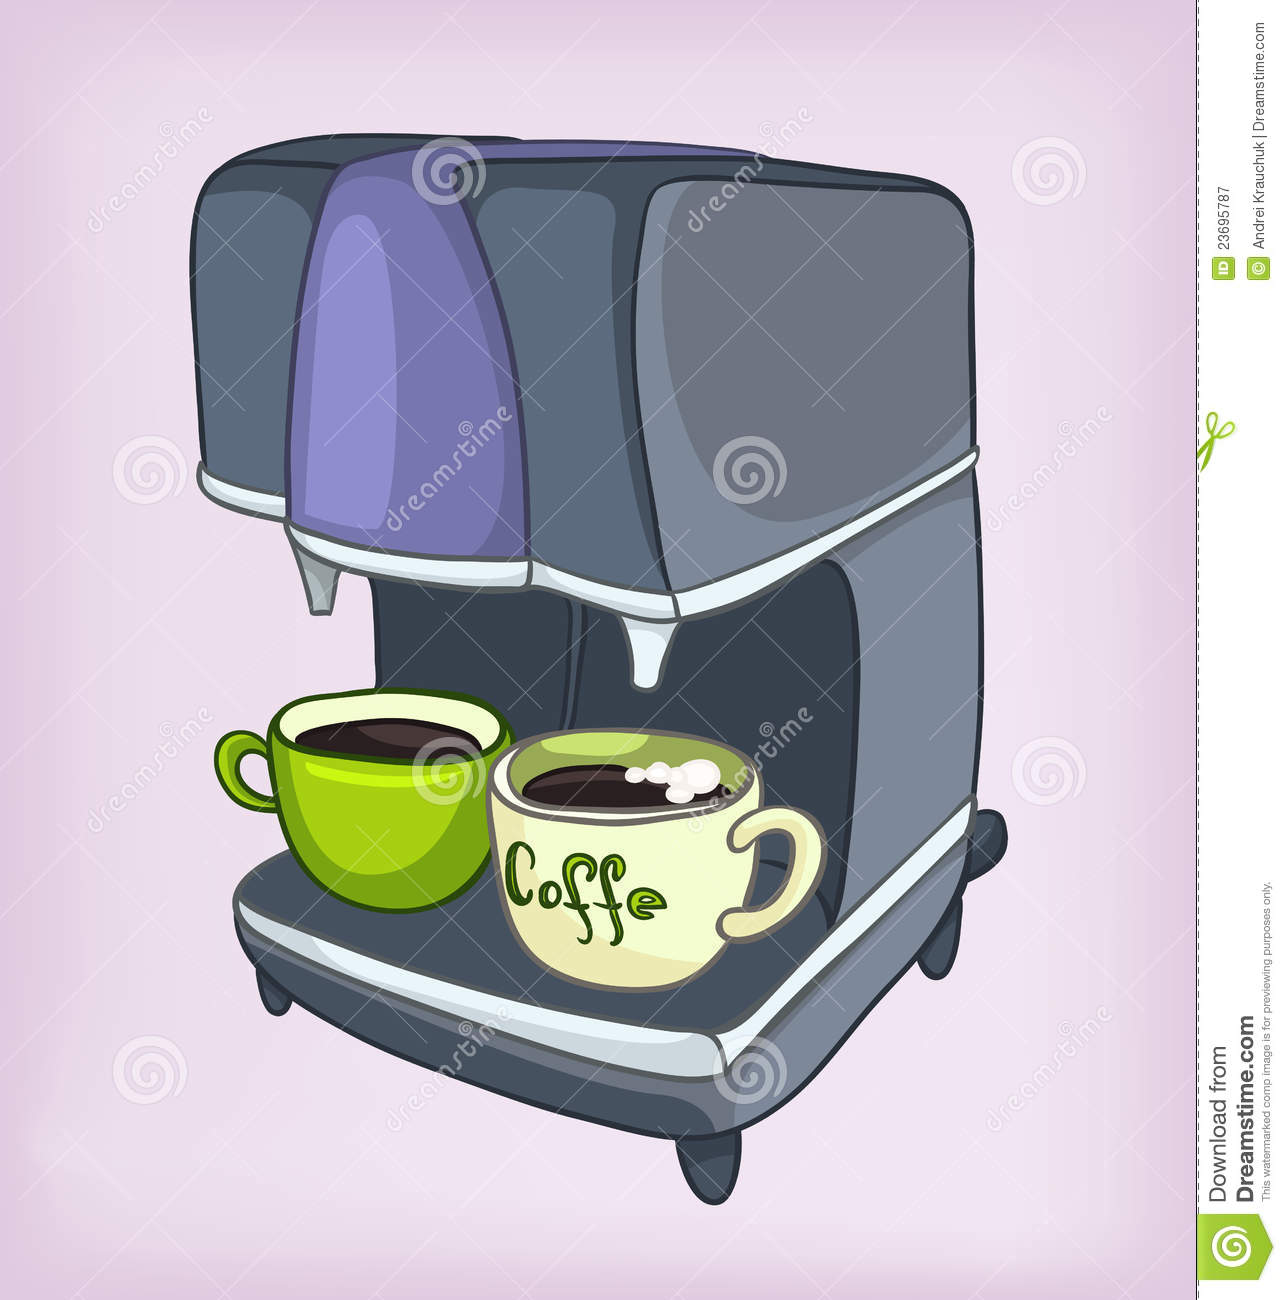 Cartoons Home Appliences Coffee Maker Royalty Free Stock Photography - Image: 23695787